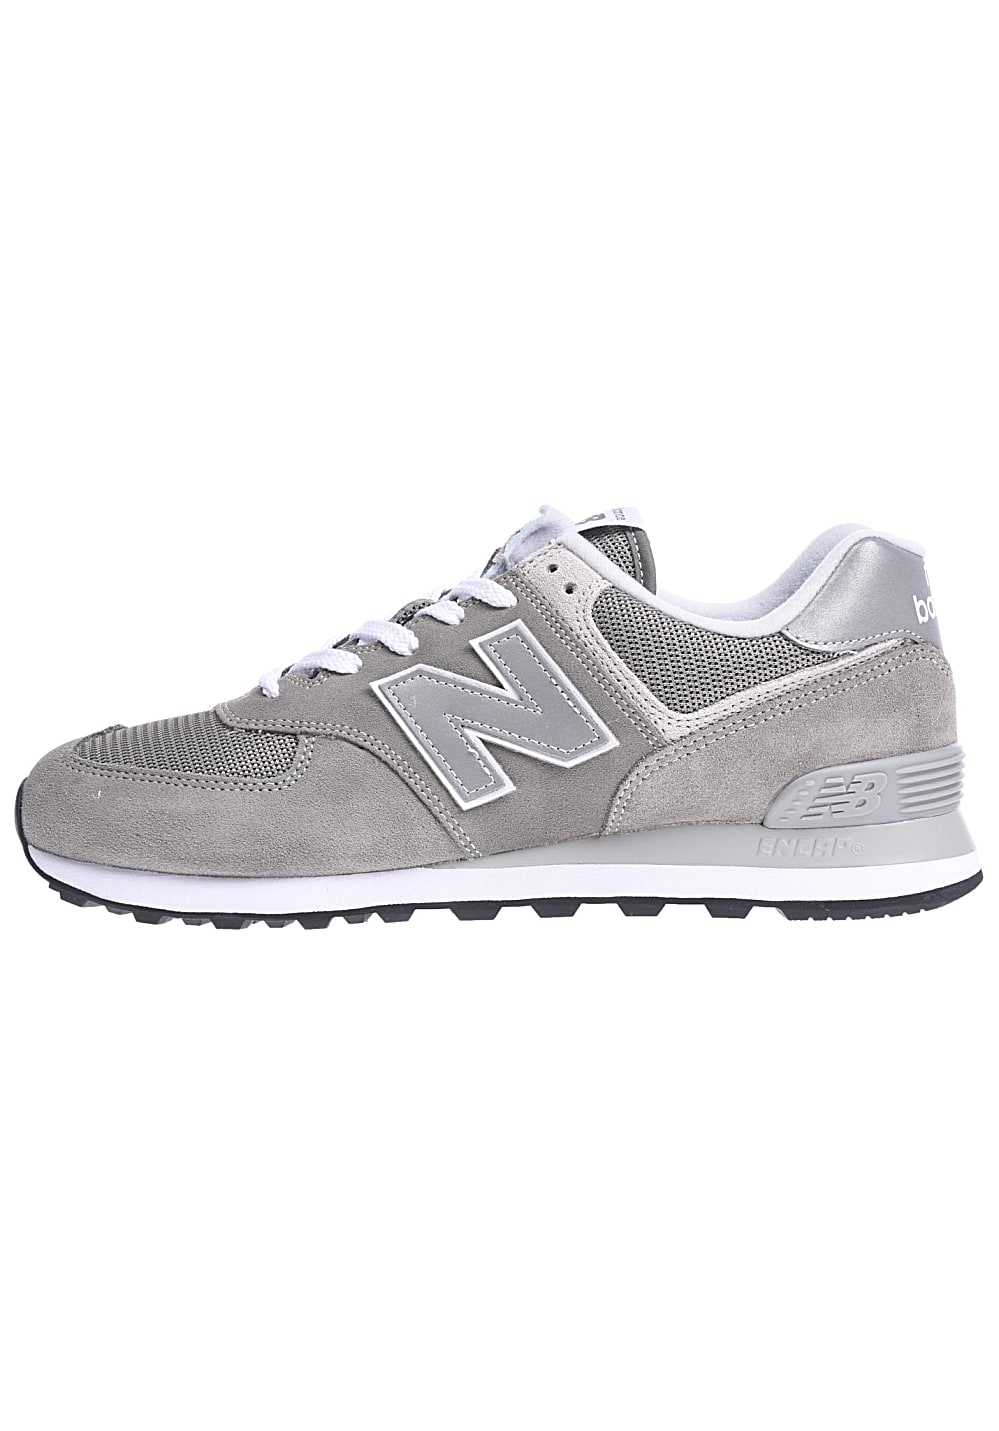 f8fa5f5b88ab0 NEW BALANCE ML574 D - Zapatillas para Hombres - Gris - Planet Sports